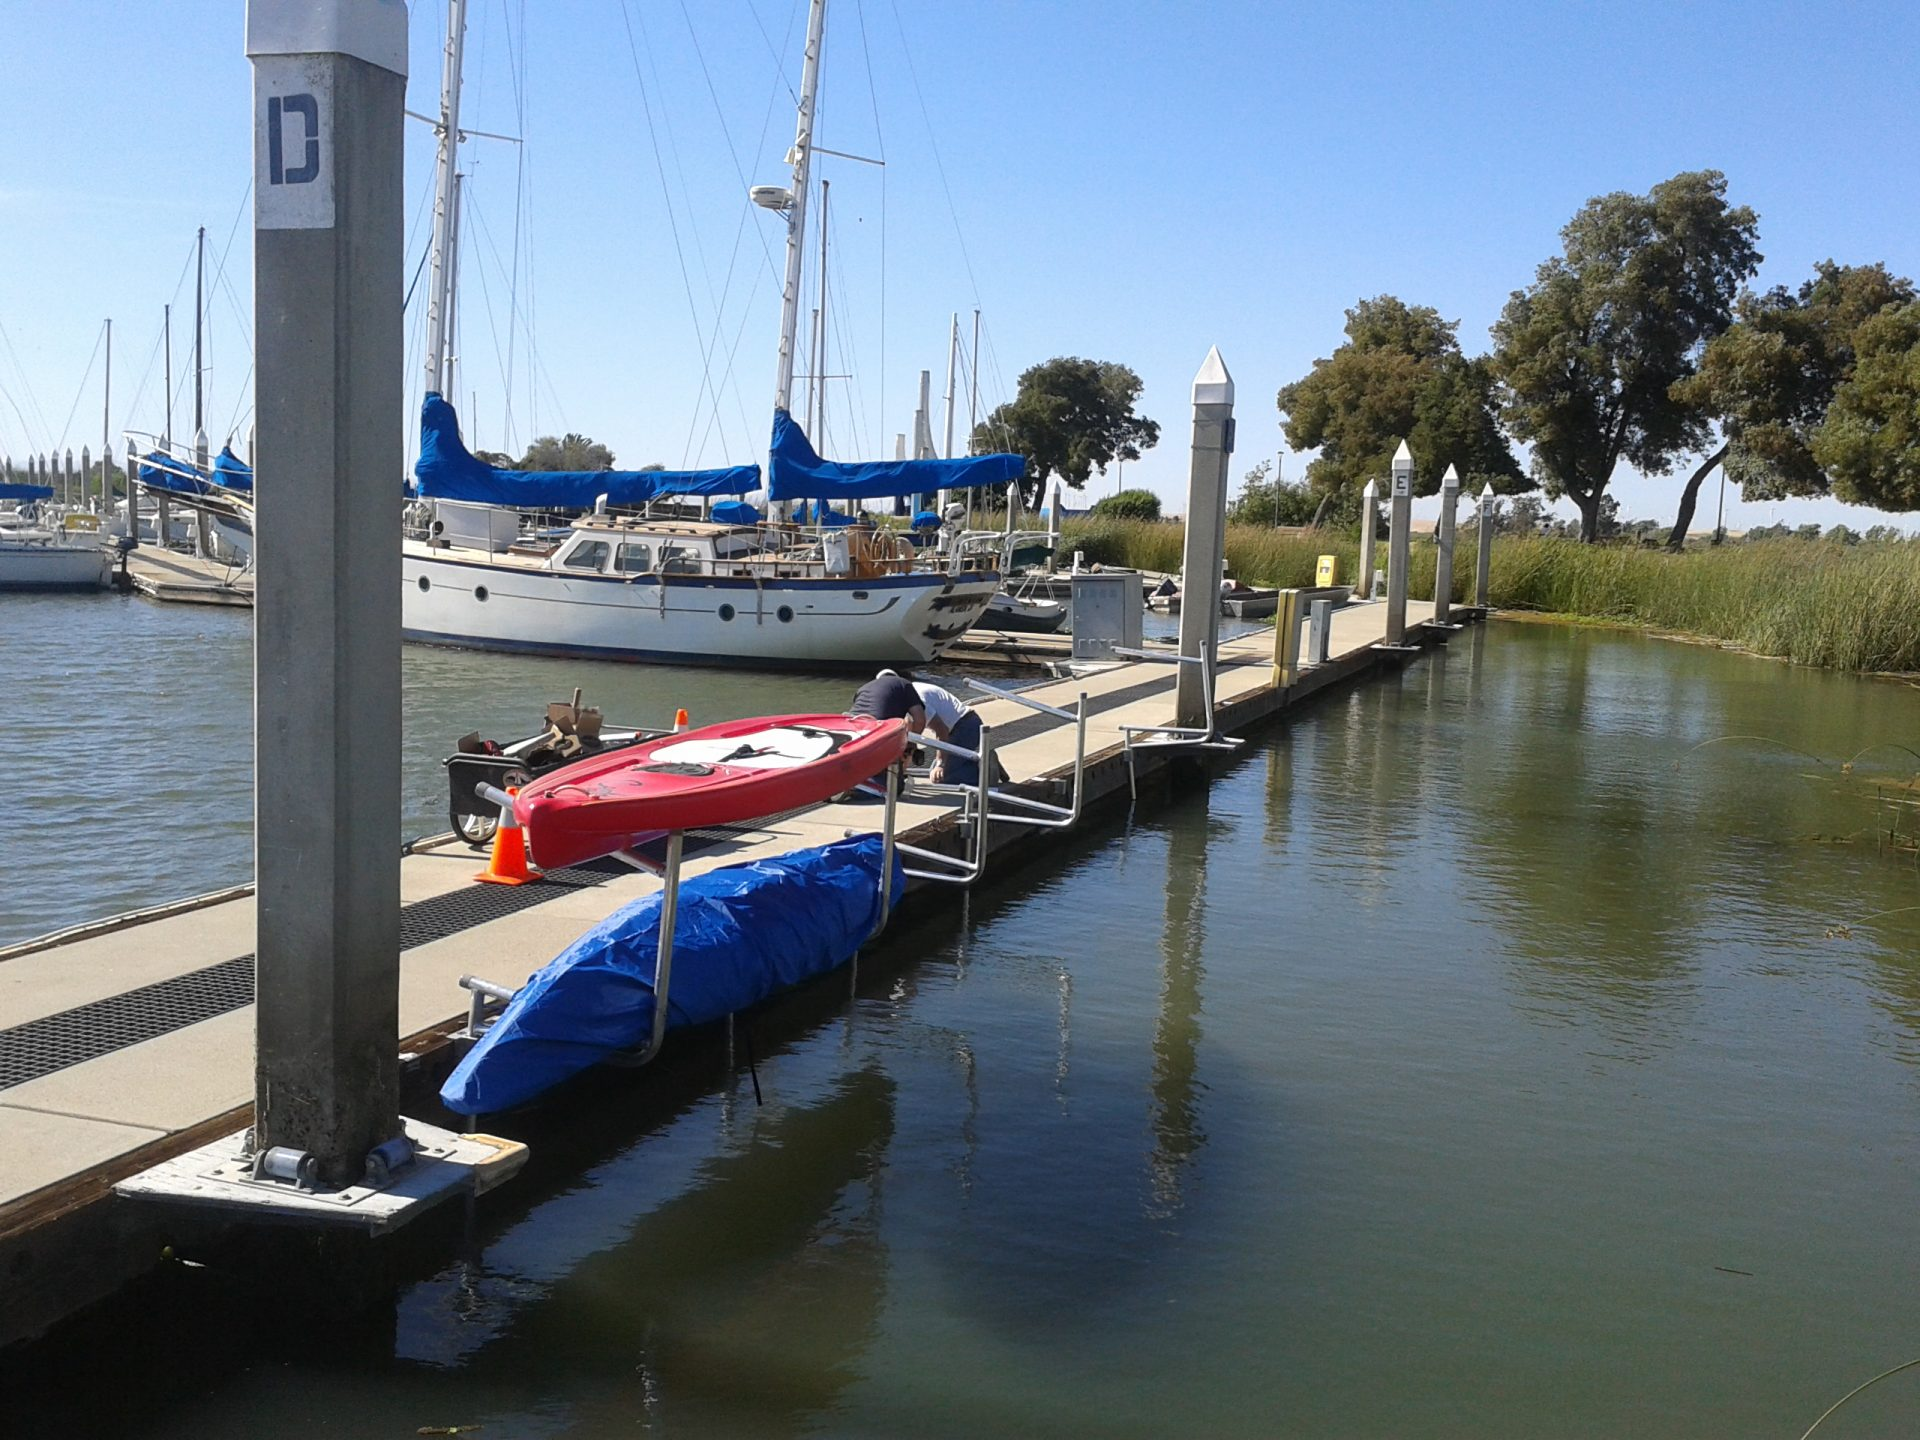 red and blue kayaks in racks, sailboat beyond